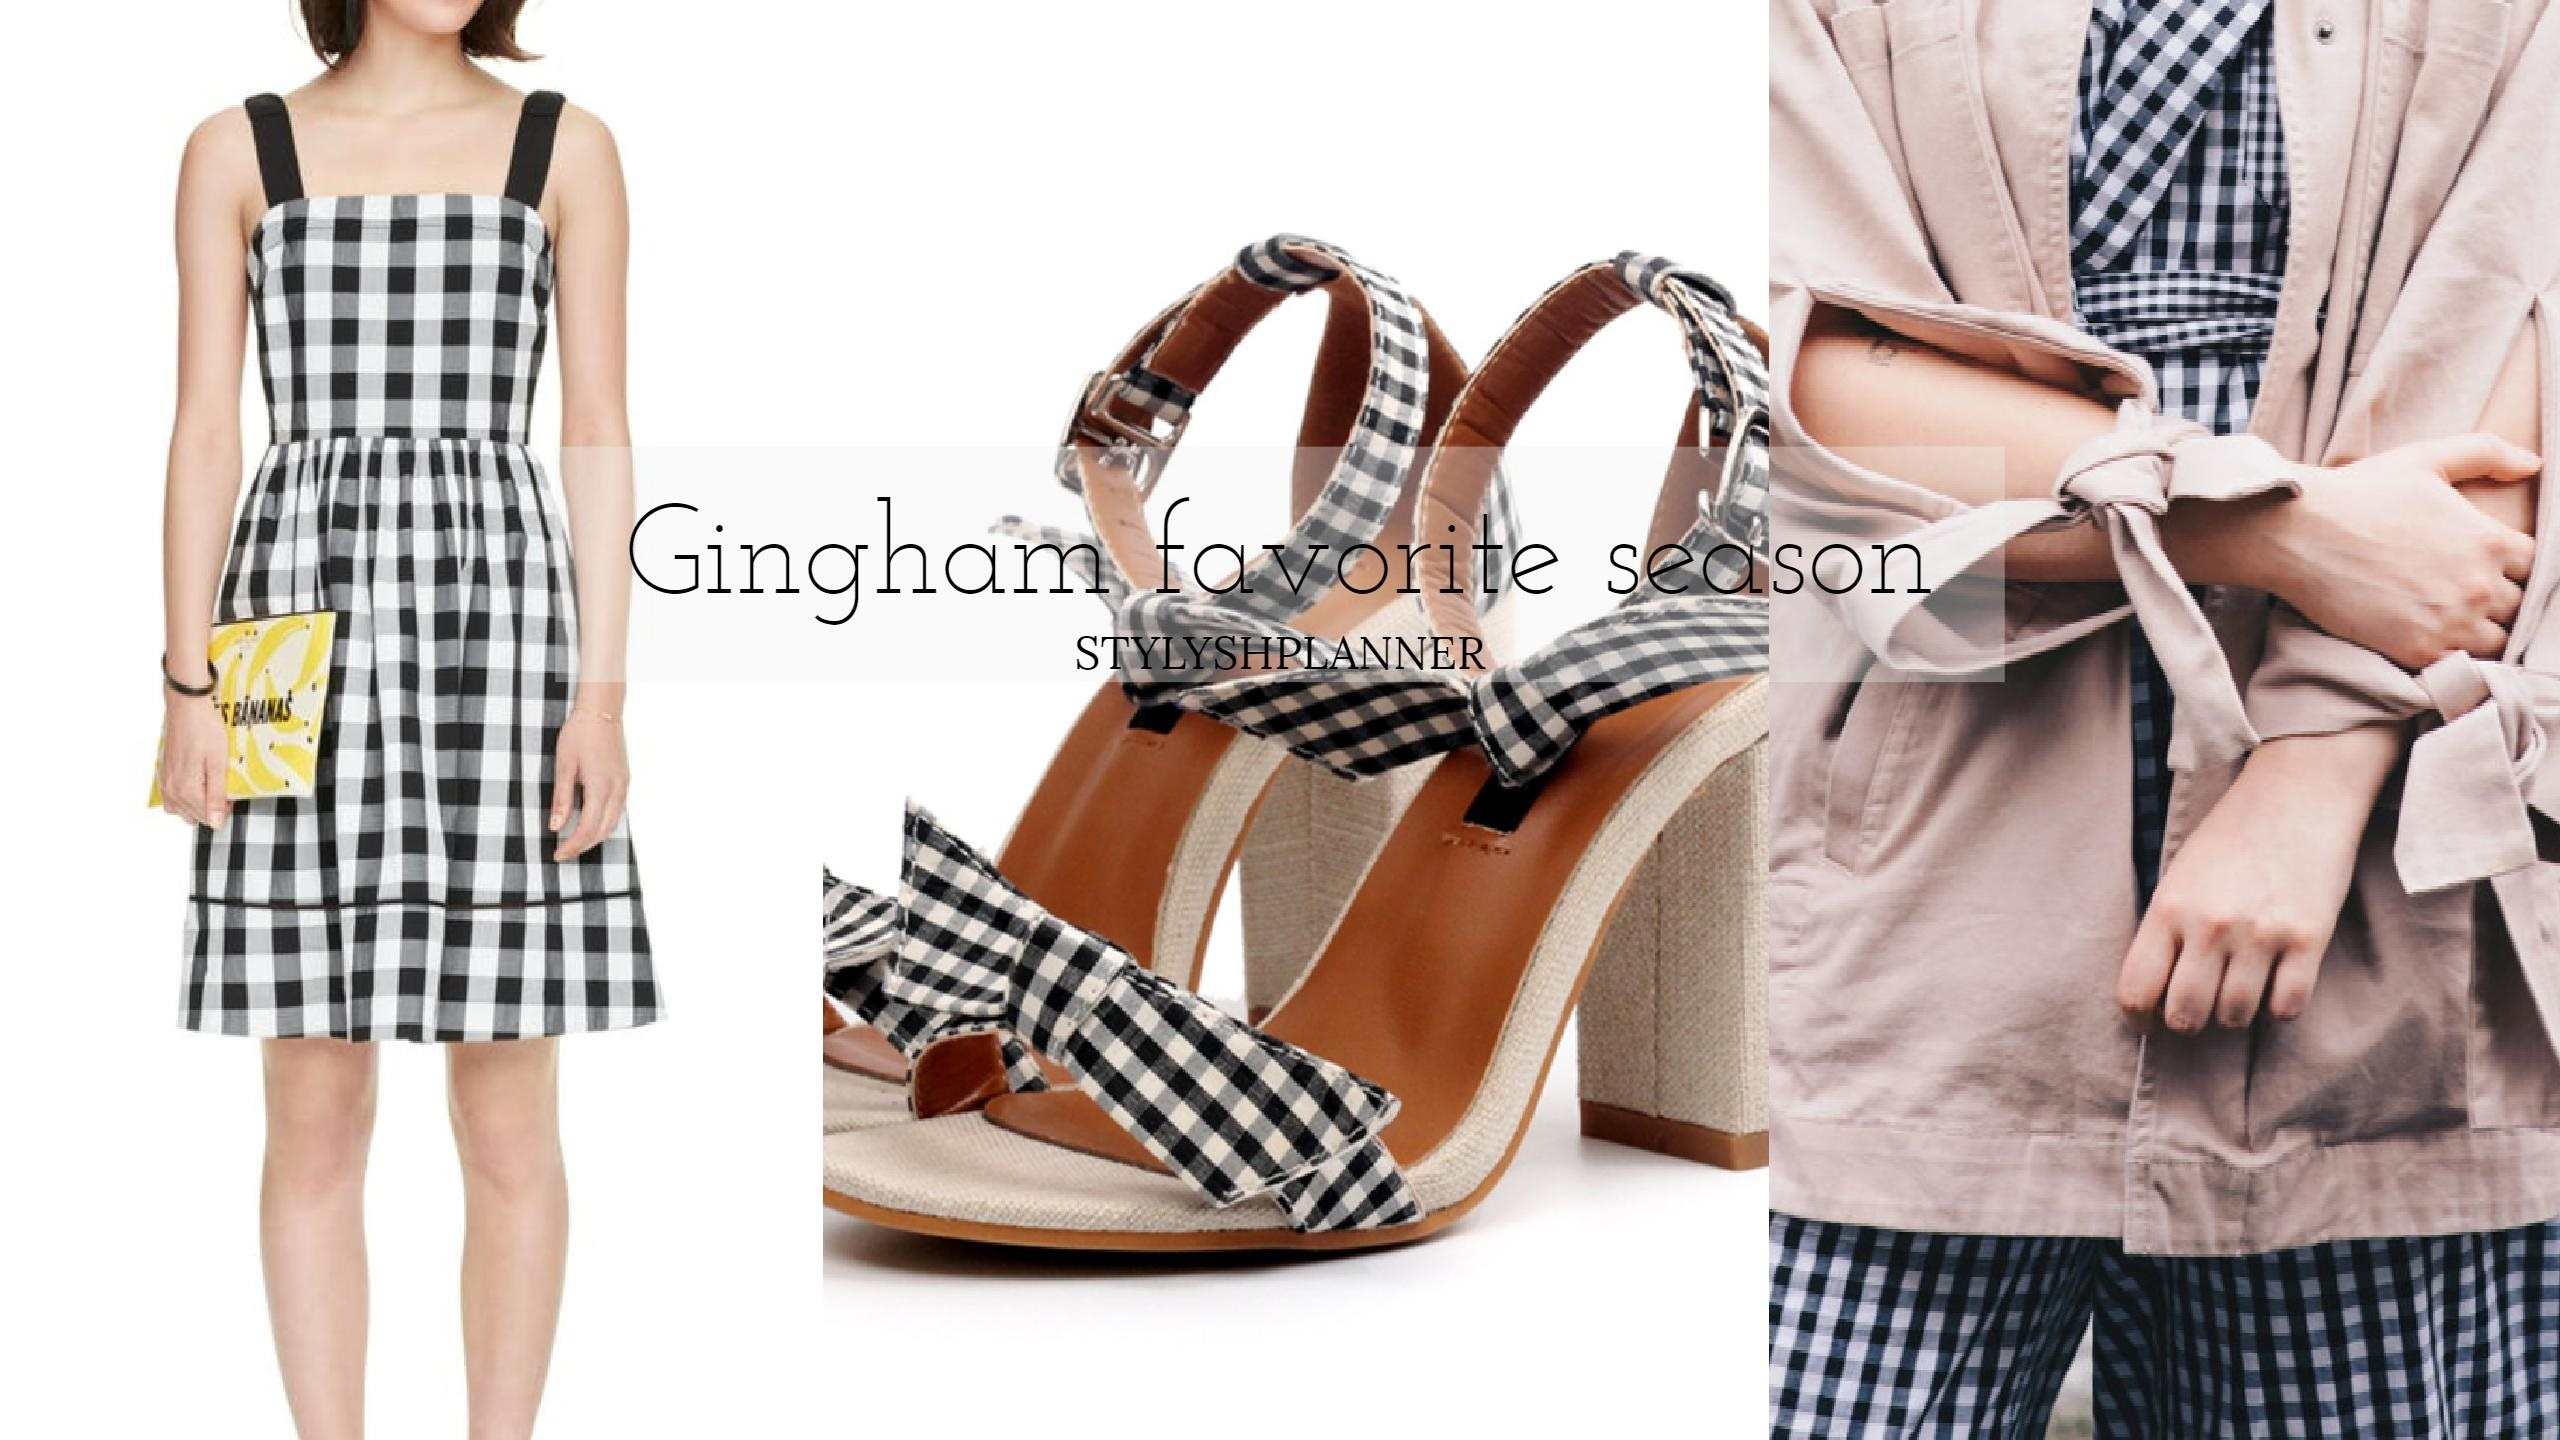 Gingham favorite season